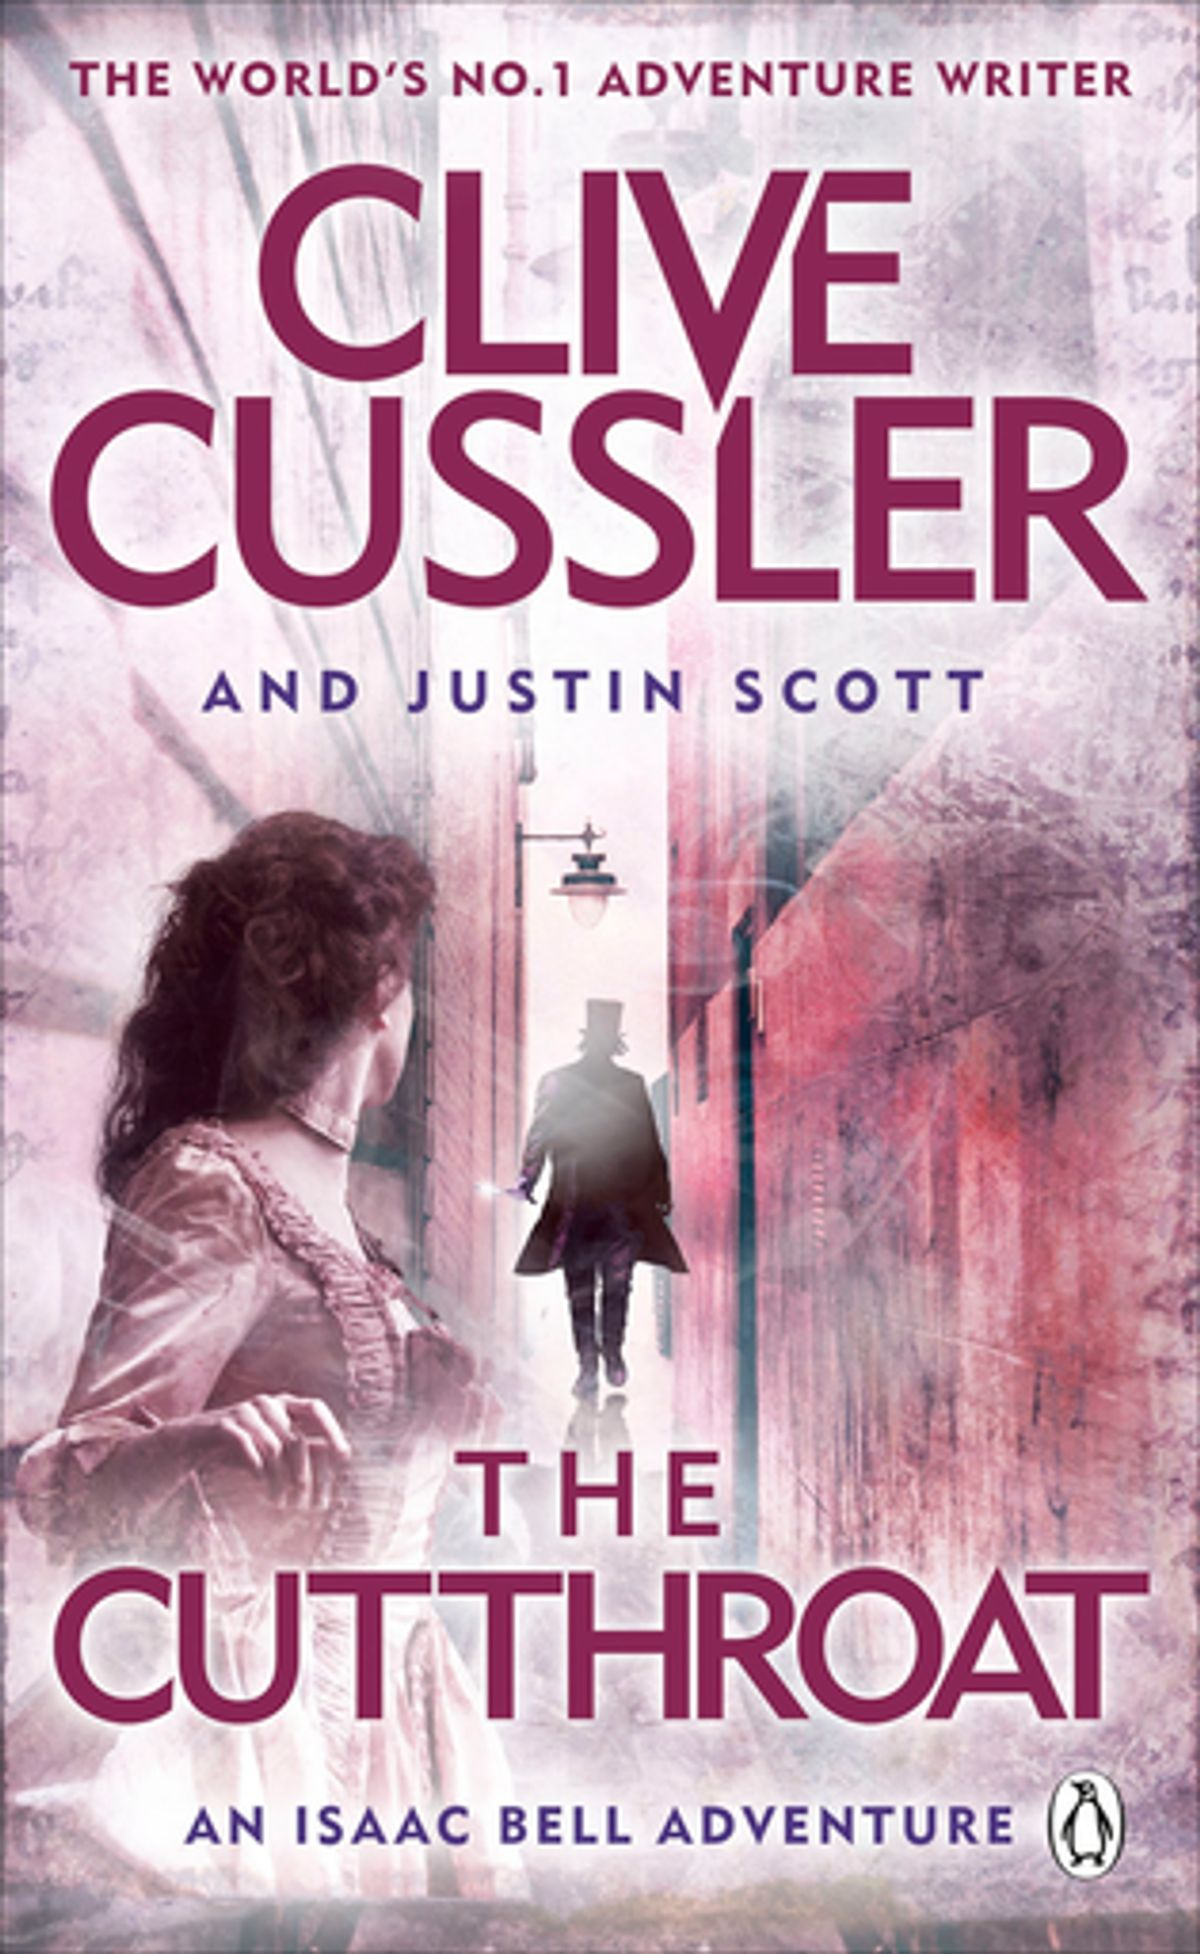 The Cutthroat by Clive Cussler, Justin Scott, ISBN: 9781405927666